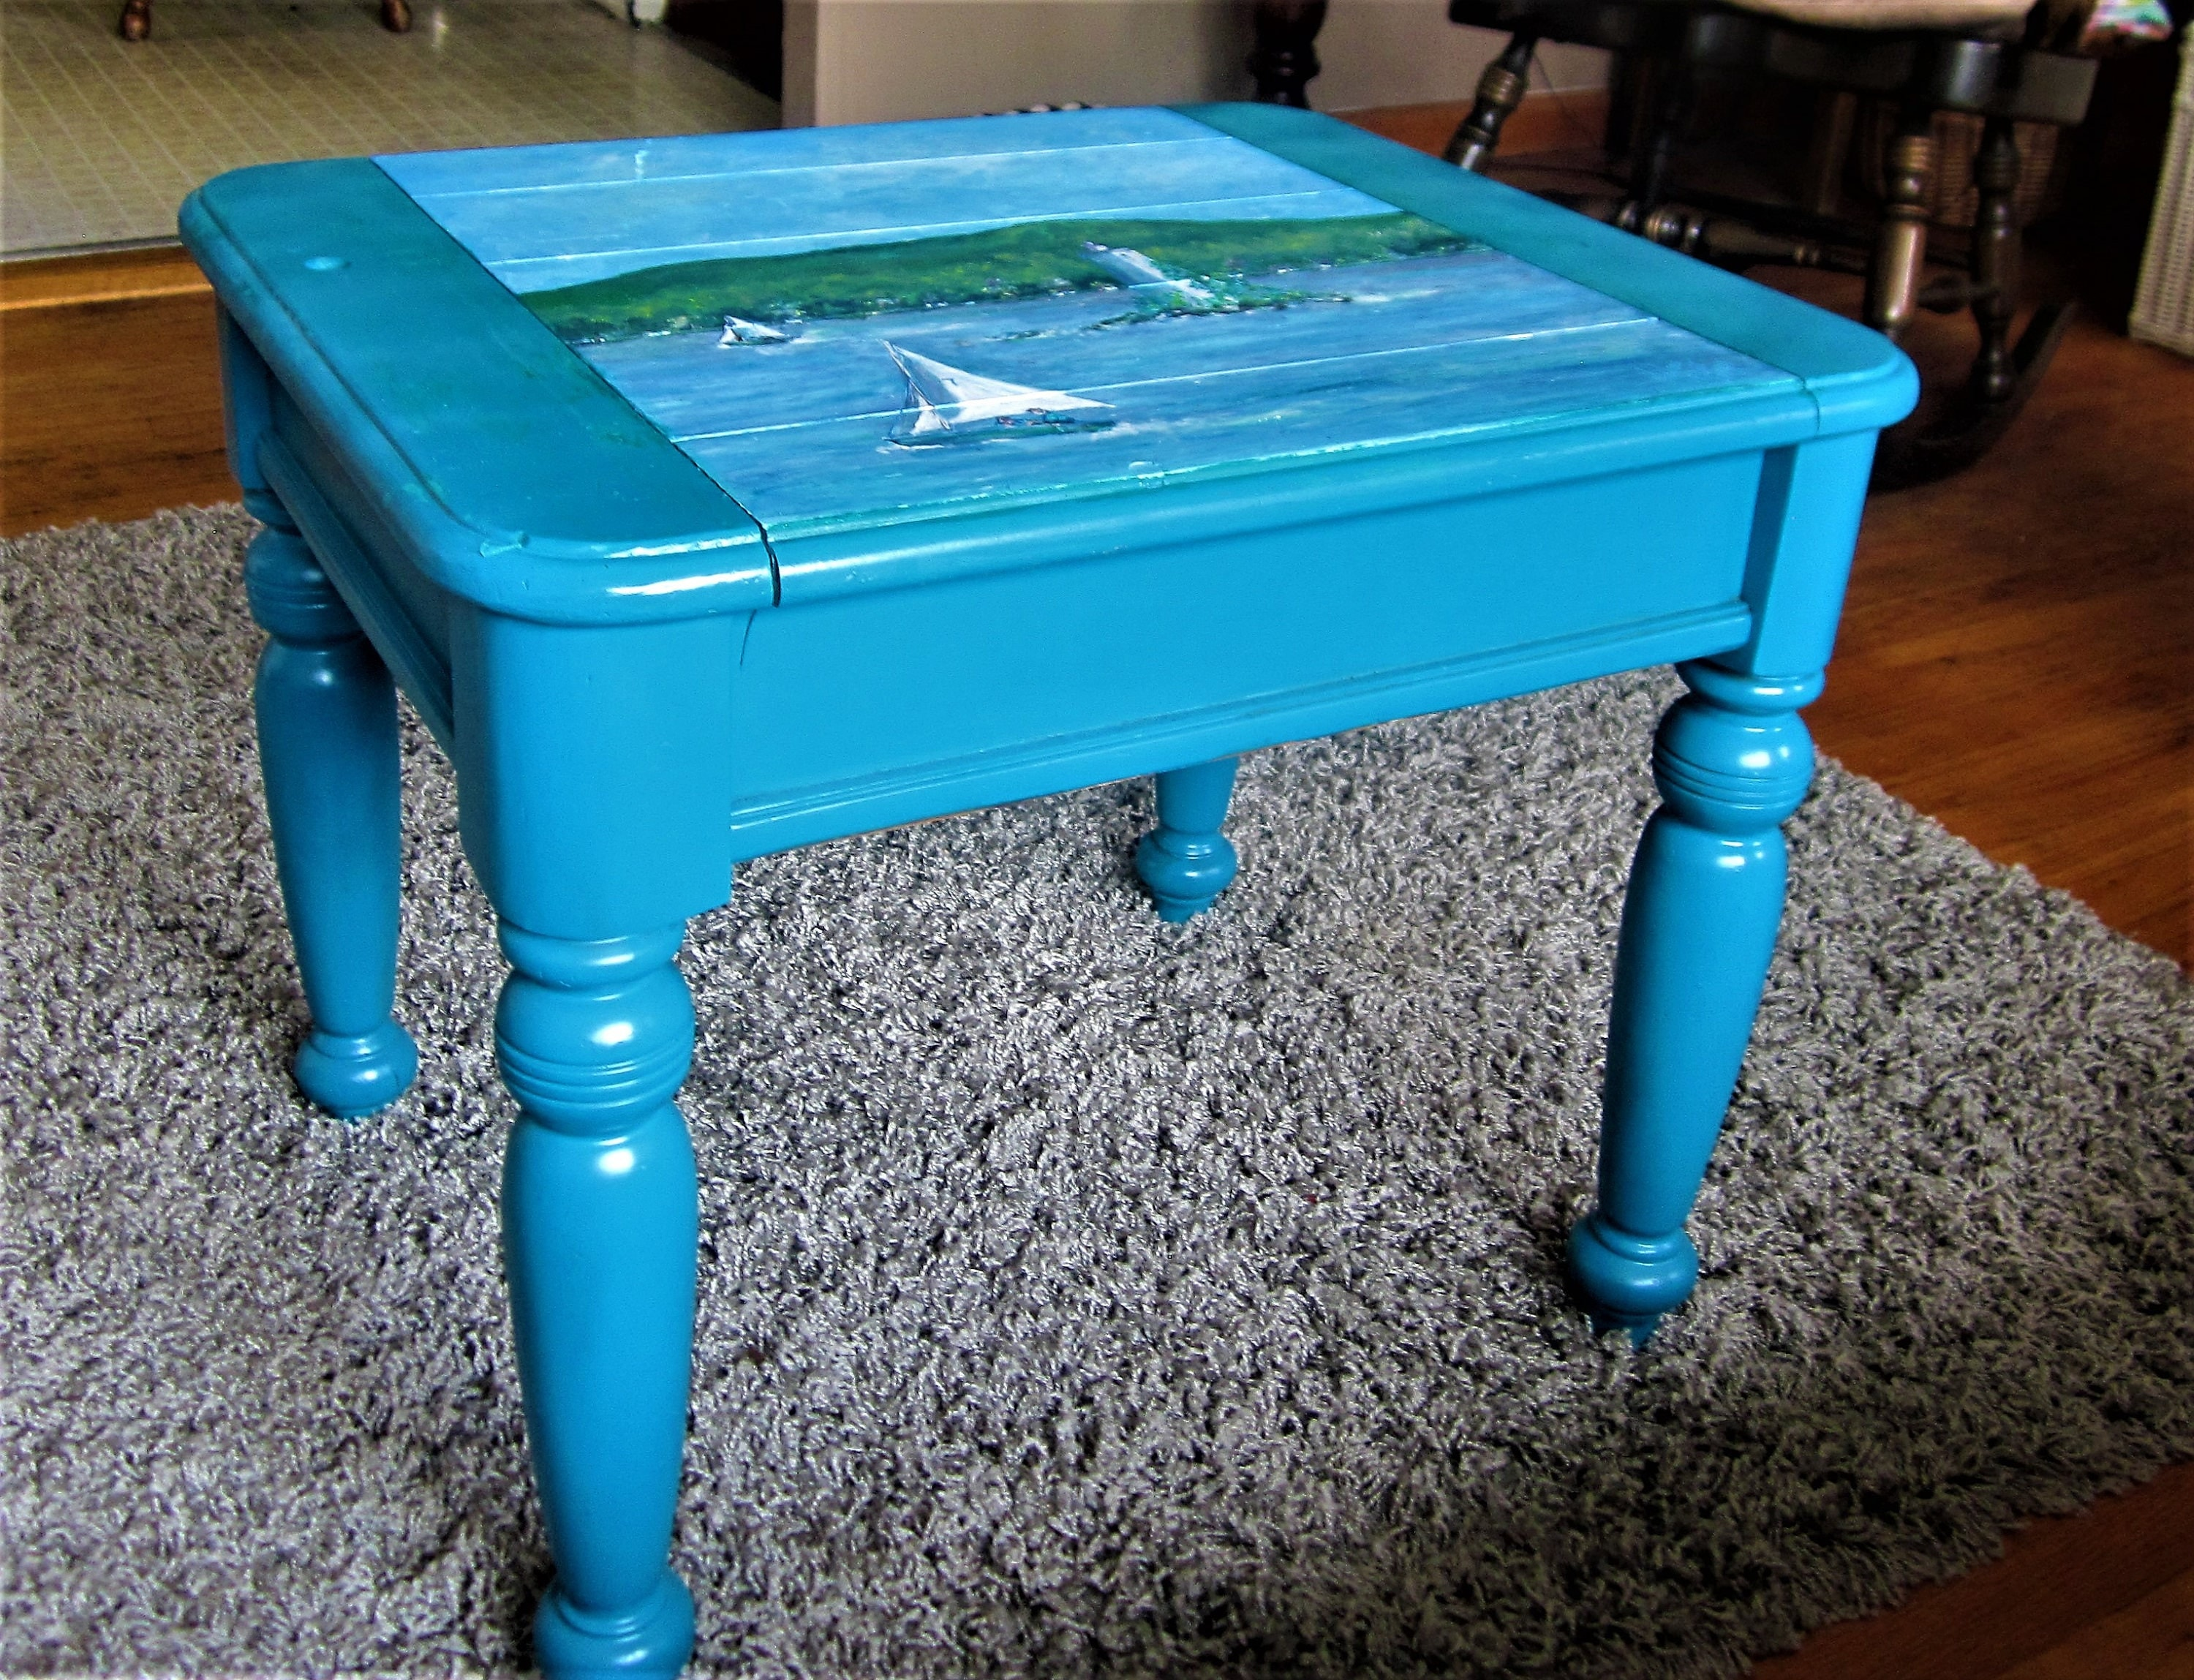 Excellent Hand Painted Vintage Lake Painted Hand Painted Vintage Lake Painted Hand Painted Furniture Moonachie Nj Hand Painted Furniture Ky houzz-02 Hand Painted Furniture